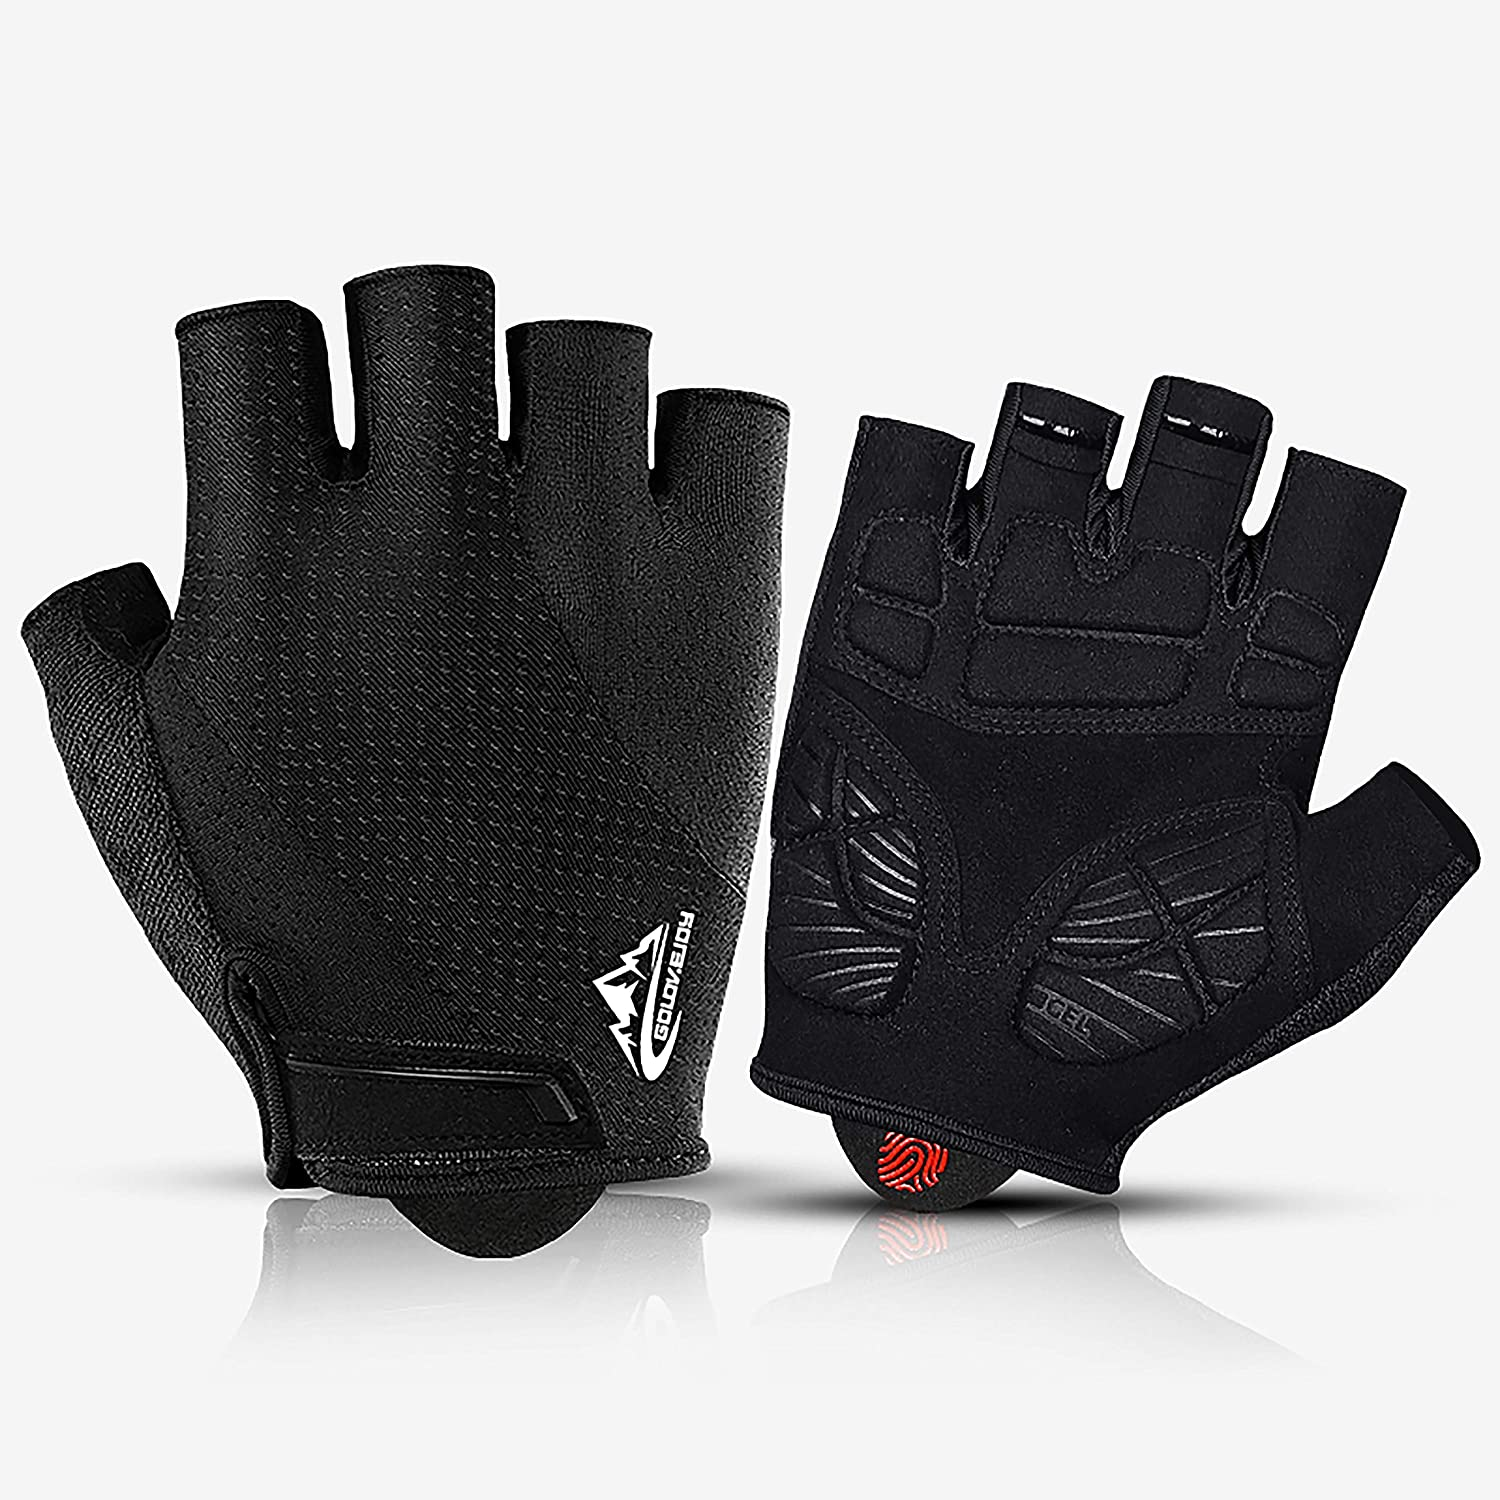 Bicycle Cycling Gloves Gym Exercise Climbing Mountain Padded Half Finger Gloves